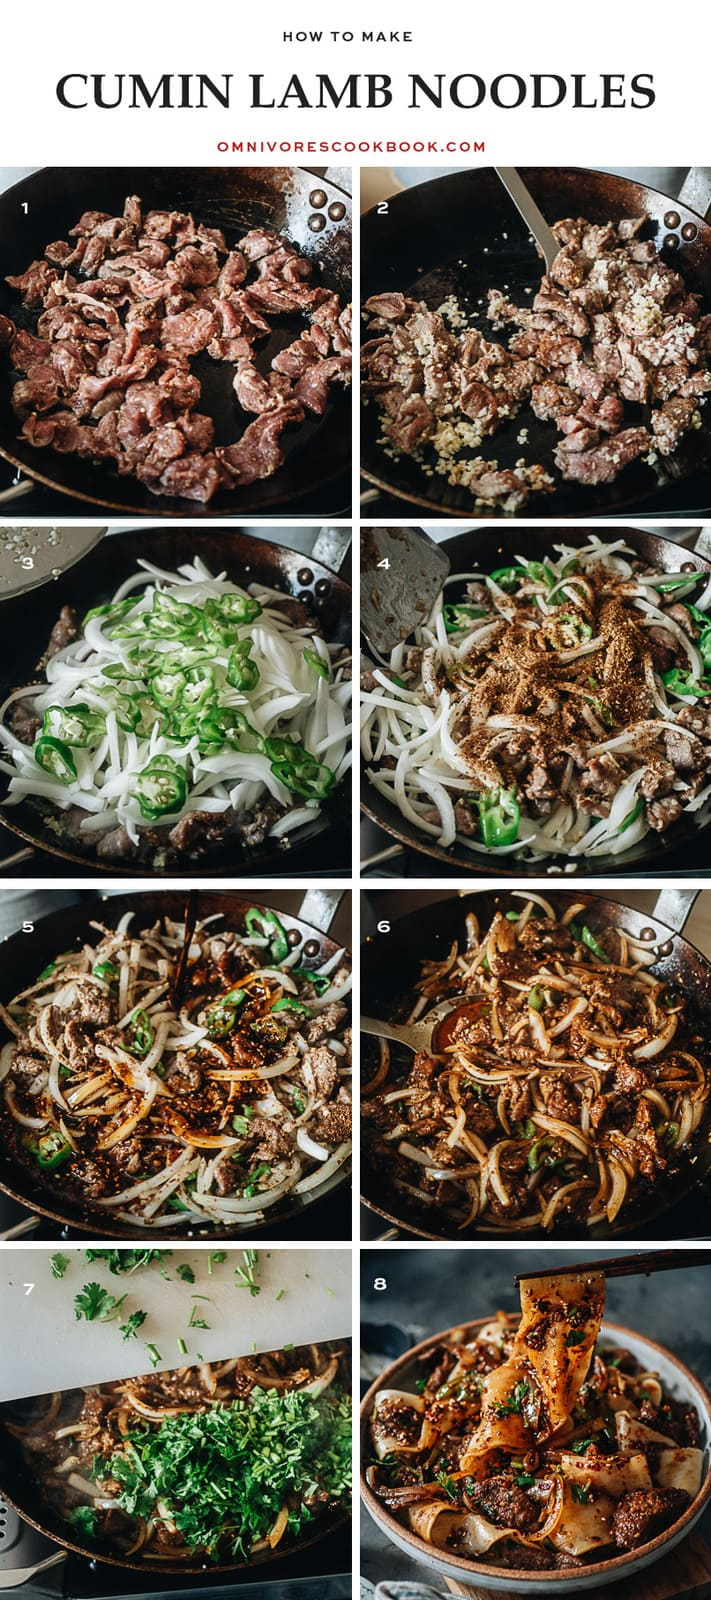 How to cook cumin lamb noodles step-by-step